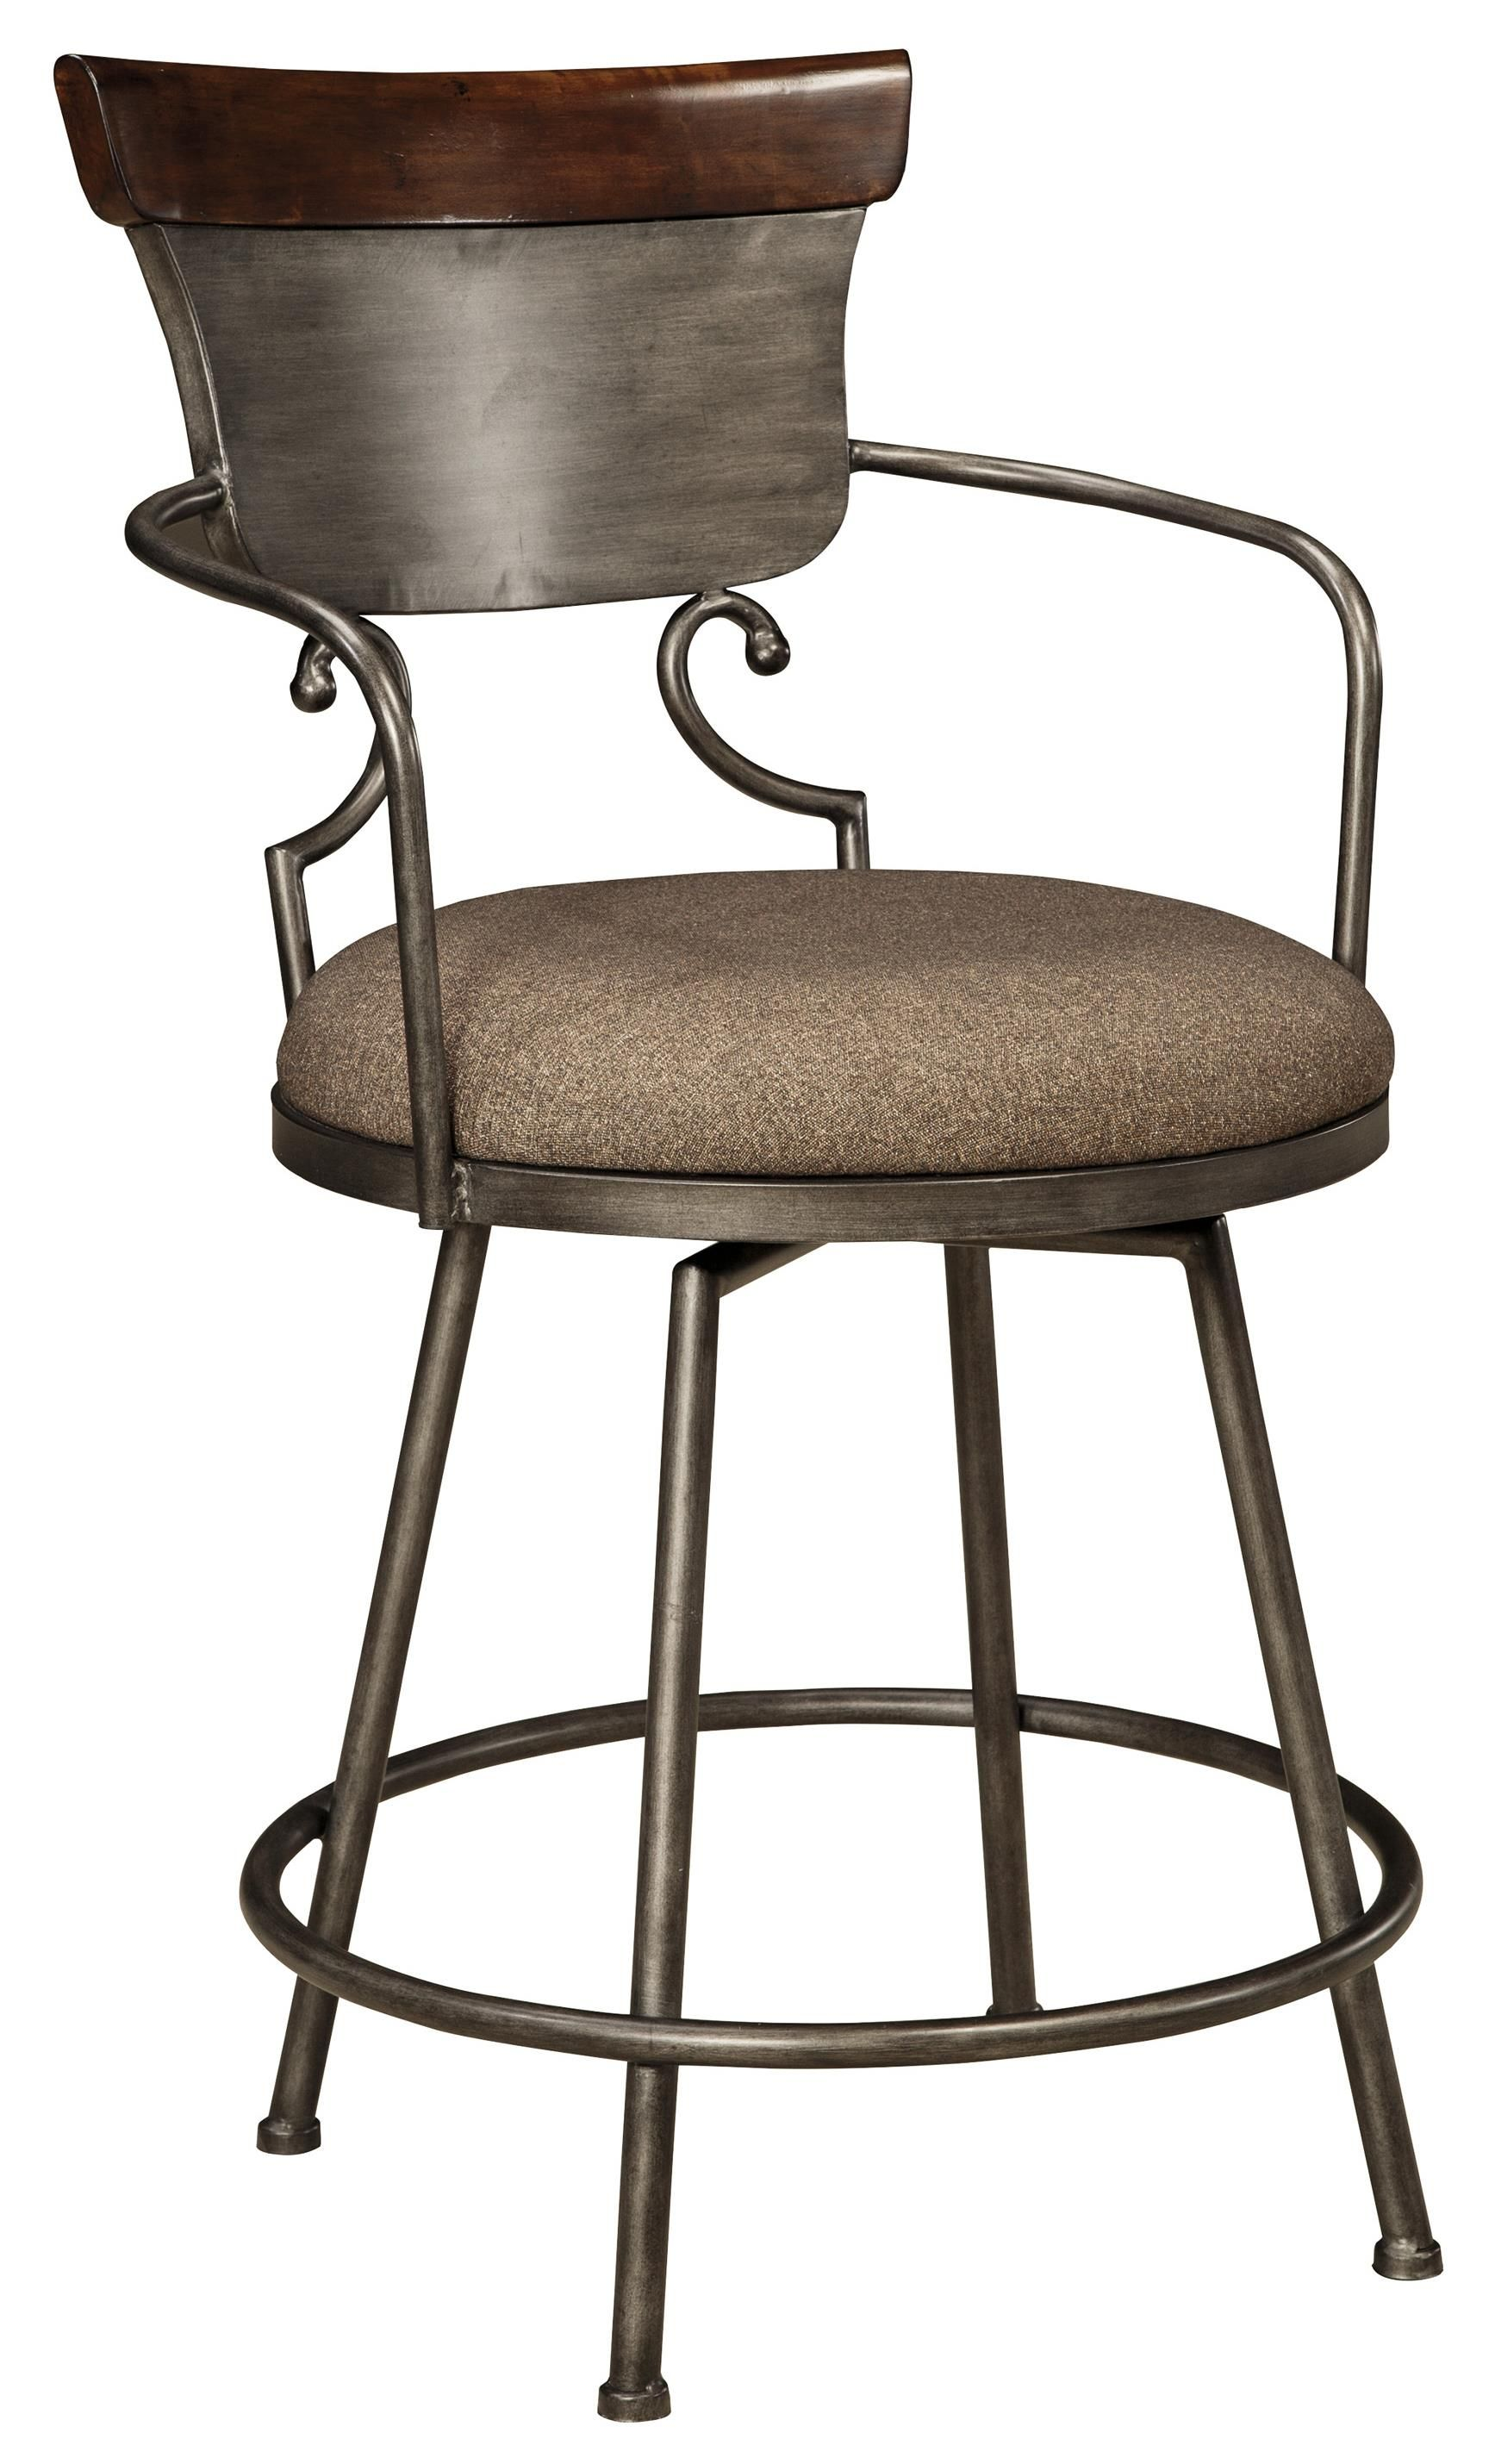 Moriann Upholstered Barstool With Metal Frame Swivel Seat By